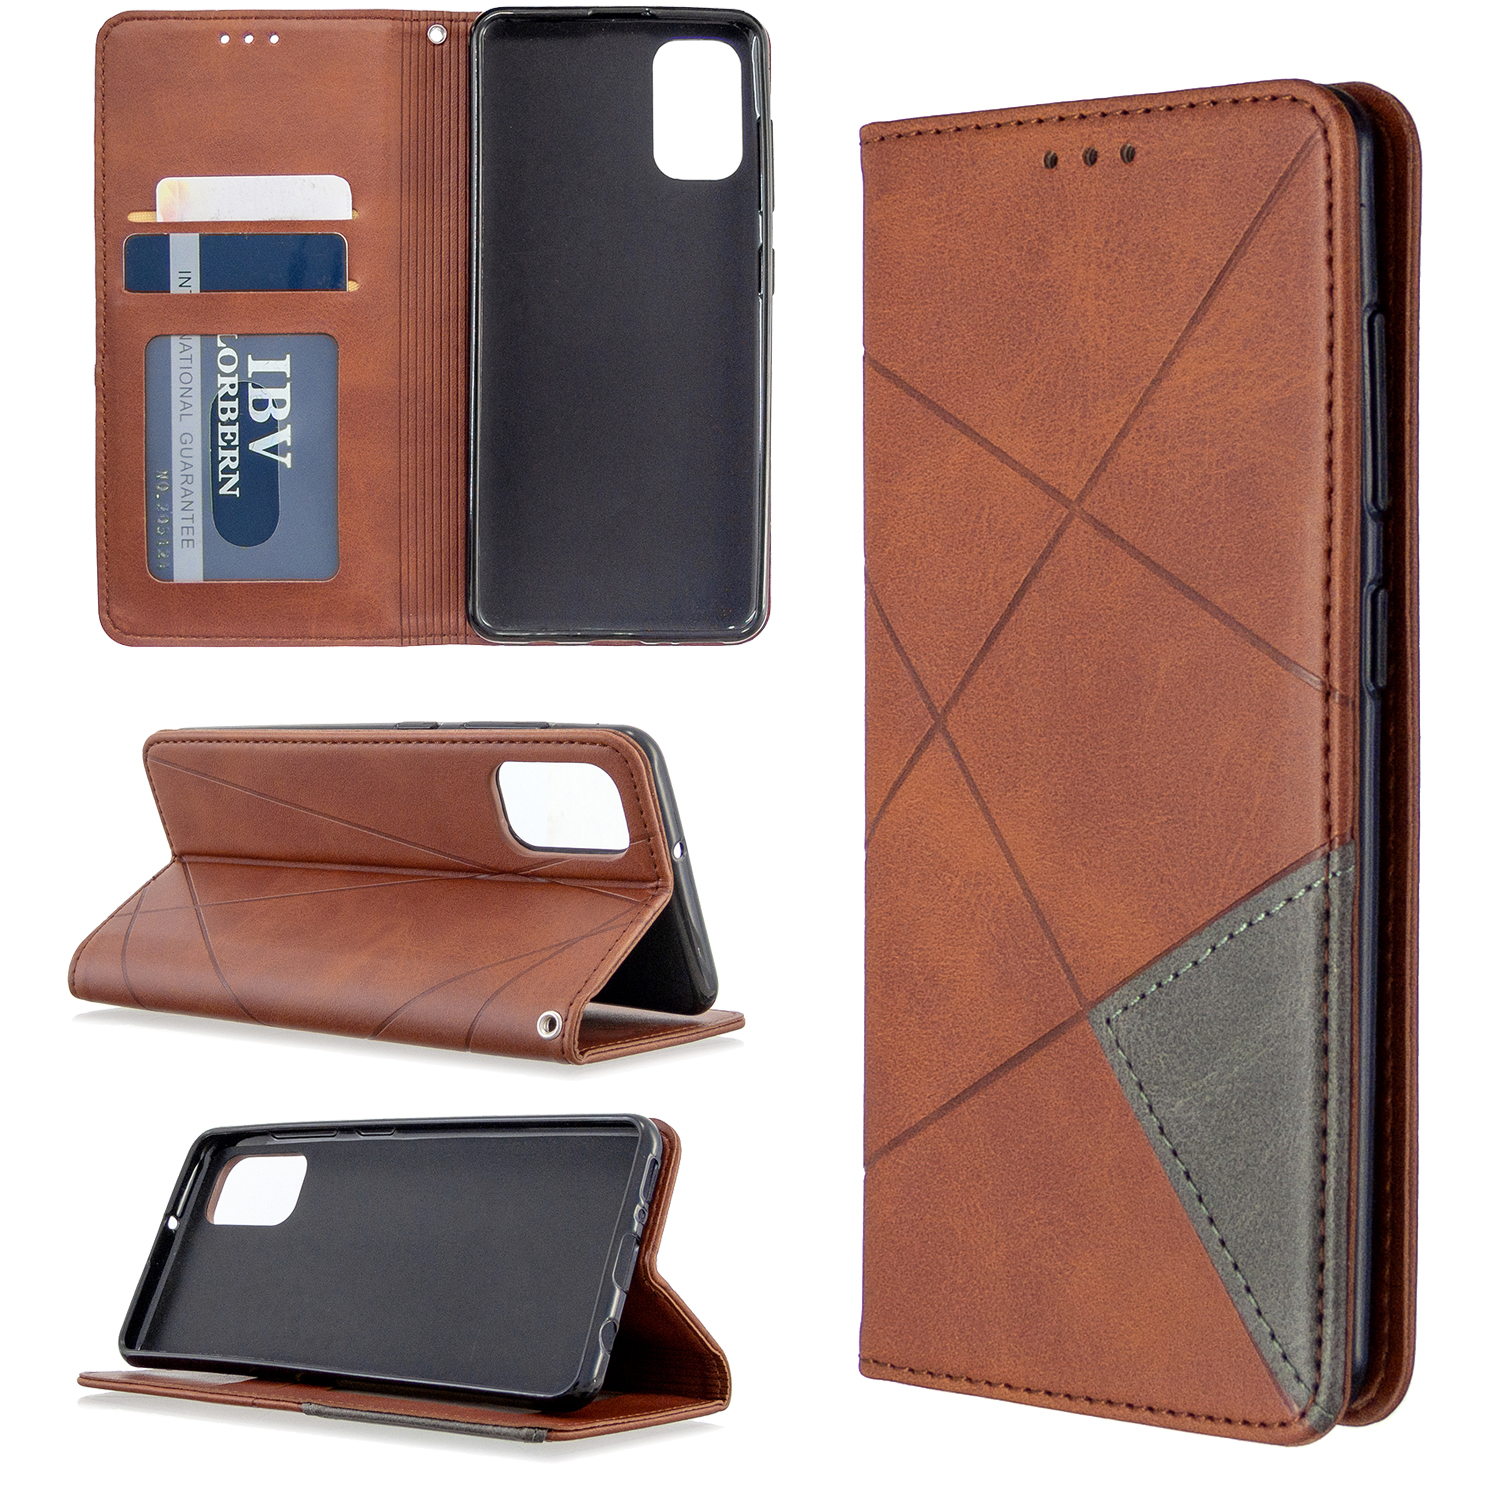 Magnetic <font><b>Leather</b></font> <font><b>Case</b></font> For <font><b>Samsung</b></font> <font><b>Galaxy</b></font> A70E A41 A11 A51 A31 S20 S20plus S20Ultra Note10 PU <font><b>Wallet</b></font> <font><b>Flip</b></font> <font><b>Stand</b></font> Cover image